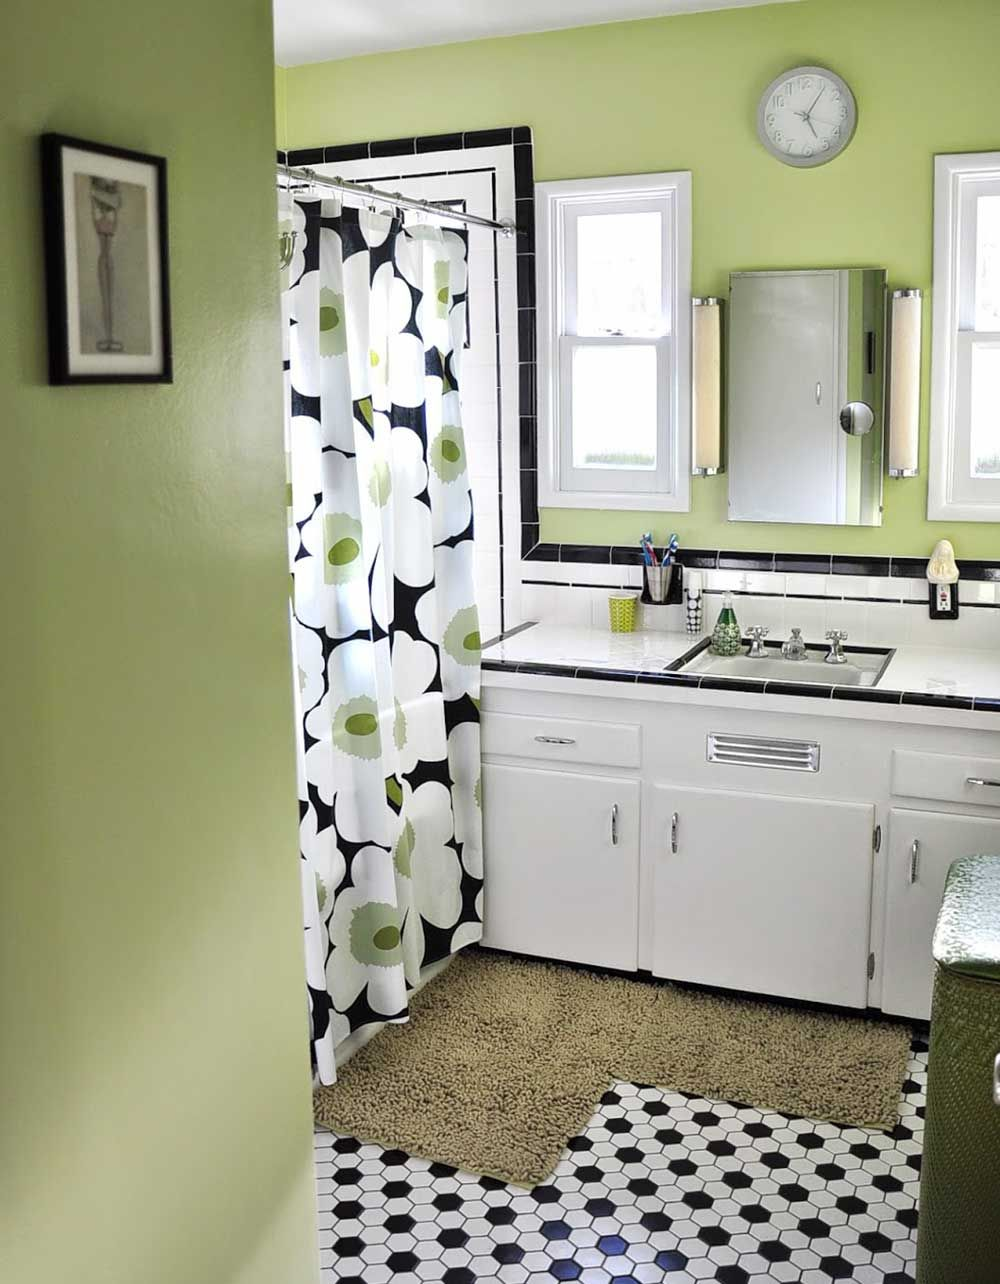 Black and white tile bathrooms done different ways